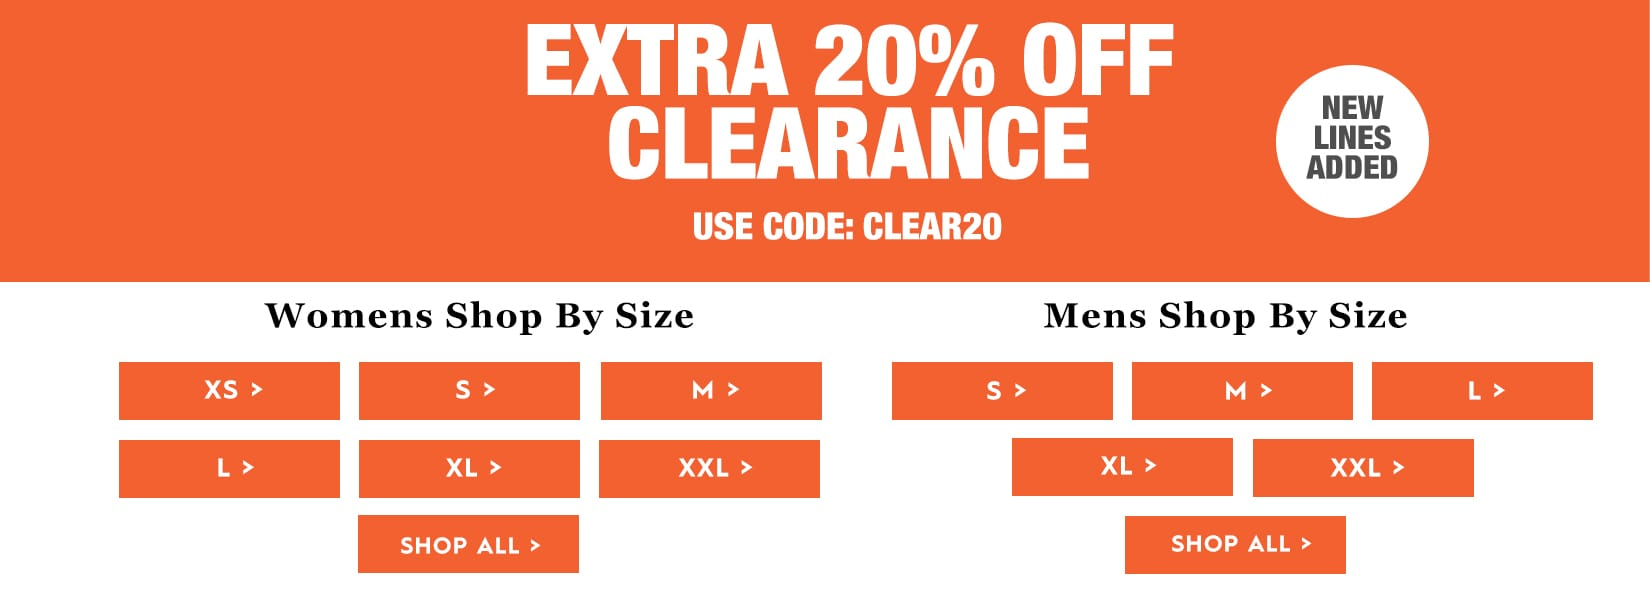 New Lines Added - Extra 20% off Sale